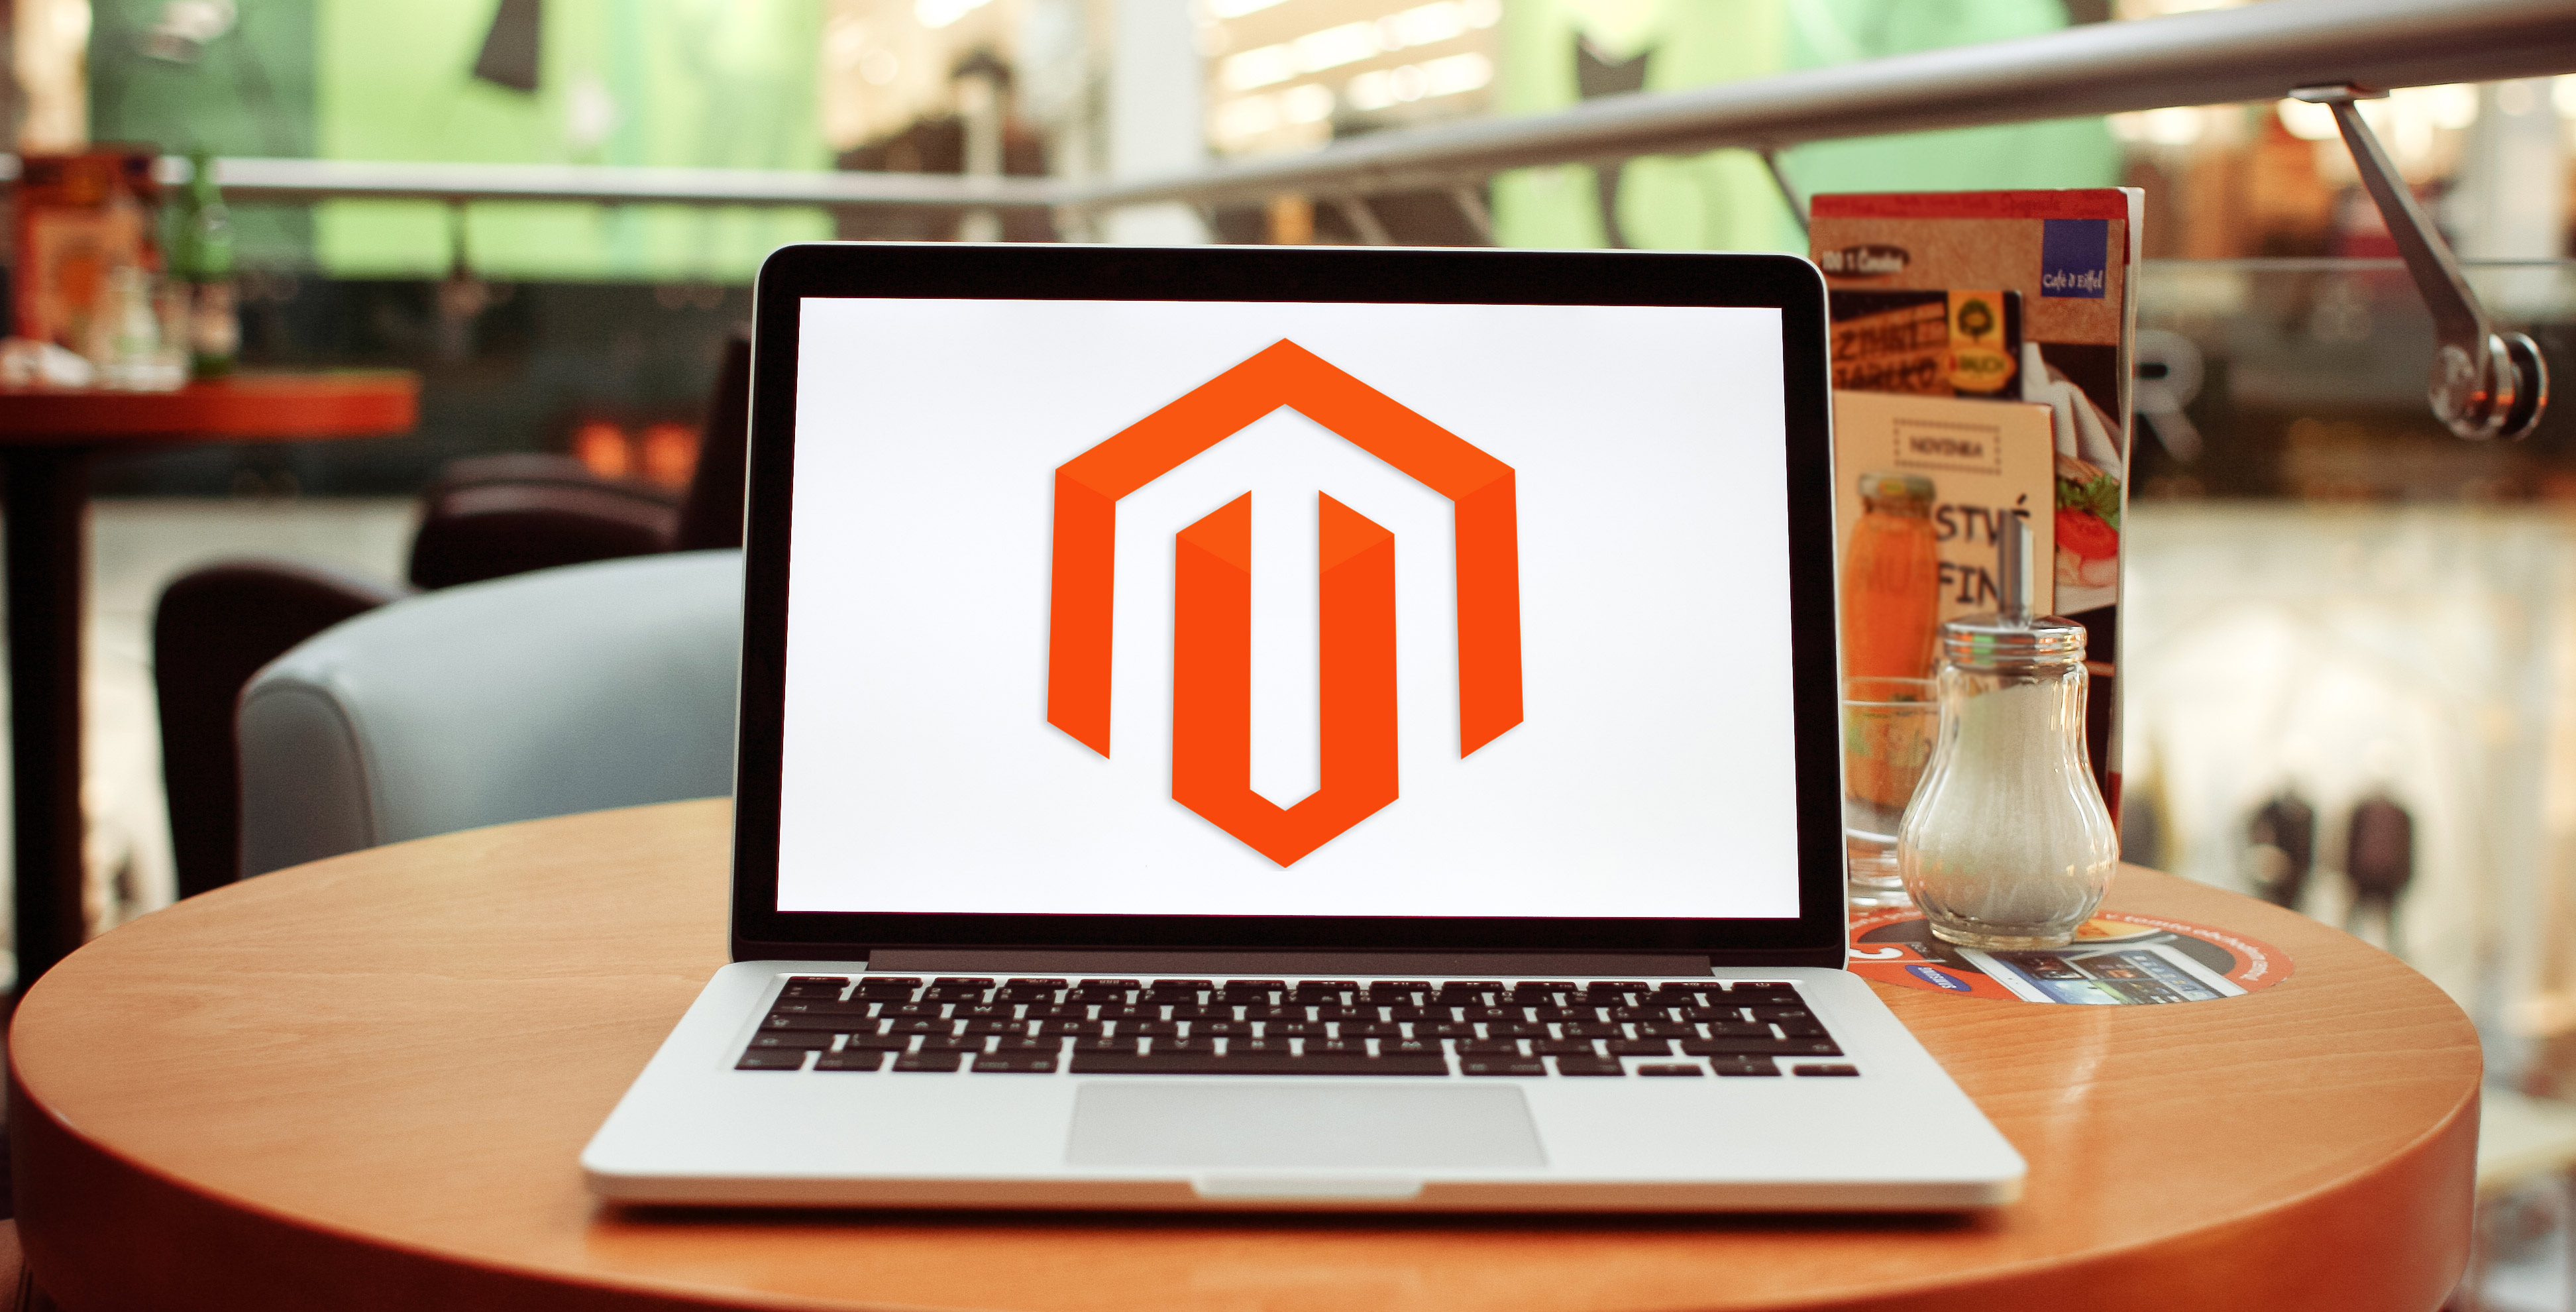 Bloom Your Online Business With Custom Magento Development Tools - Image 1